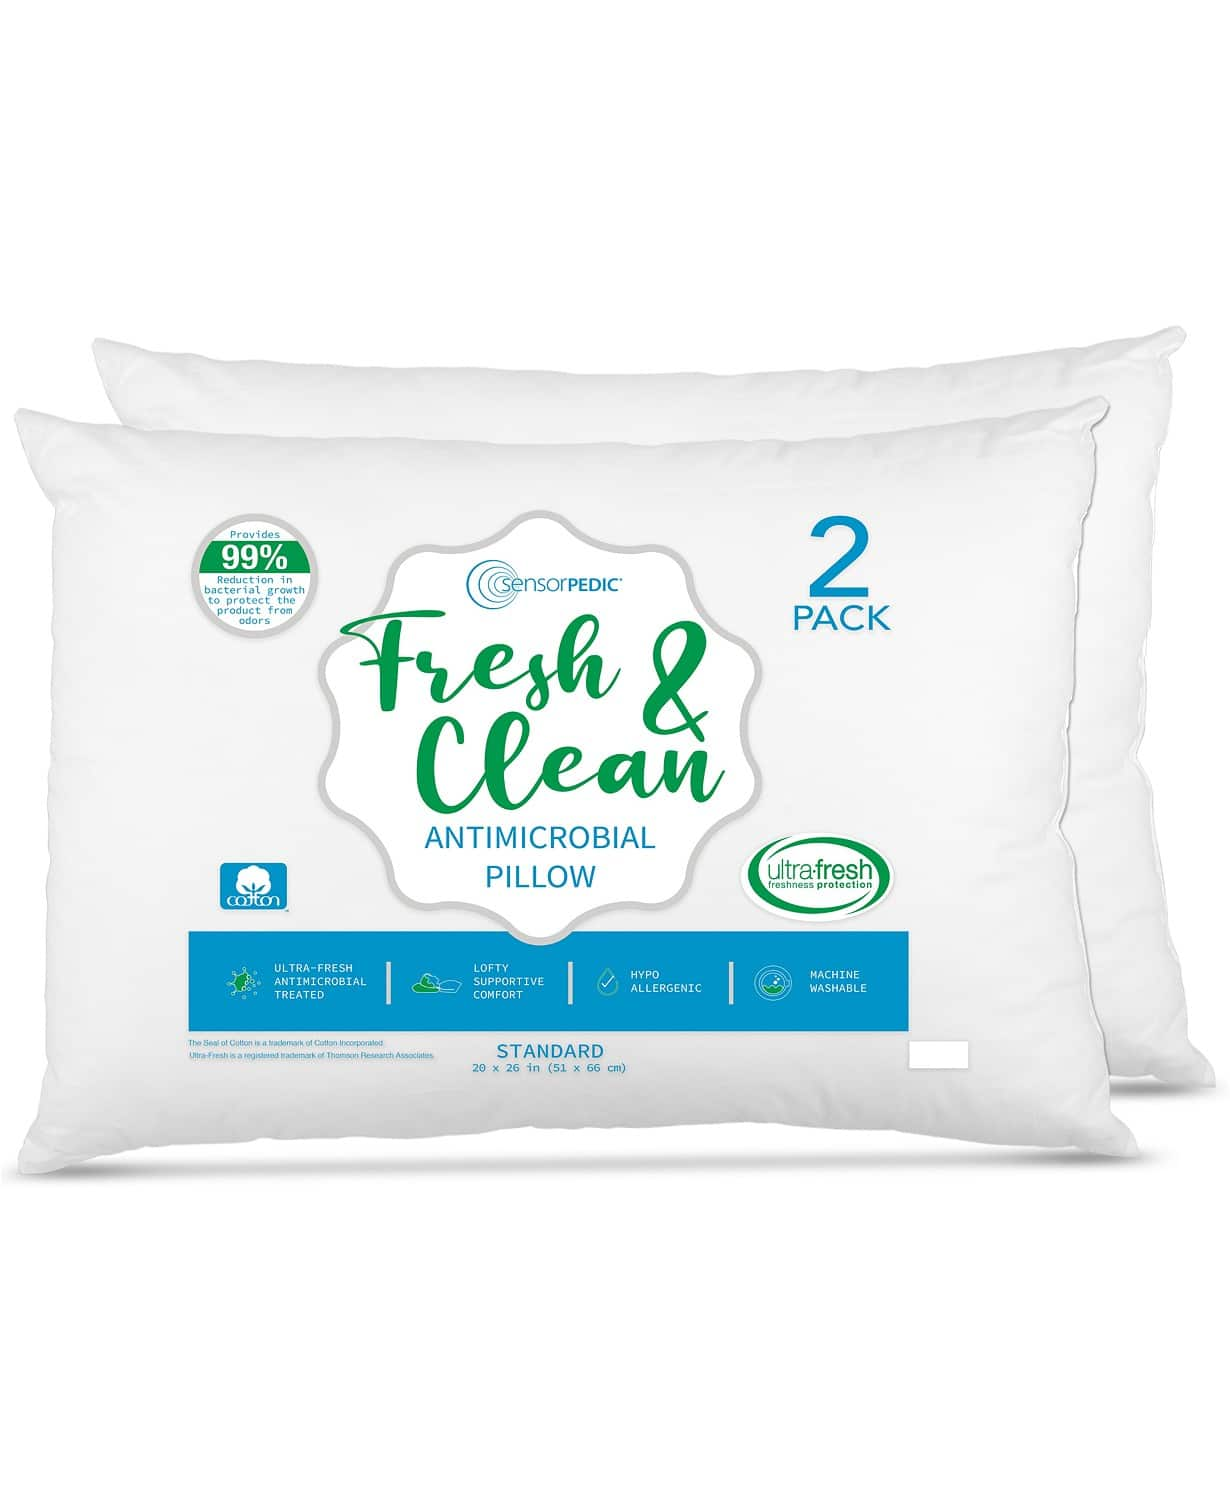 2-Pack SensorPEDIC Fresh & Clean Ultra-Fresh Antimicrobial Pillows $10 + 6% in Slickdeals Cashback (PC Req'd) + Free ship on $25+